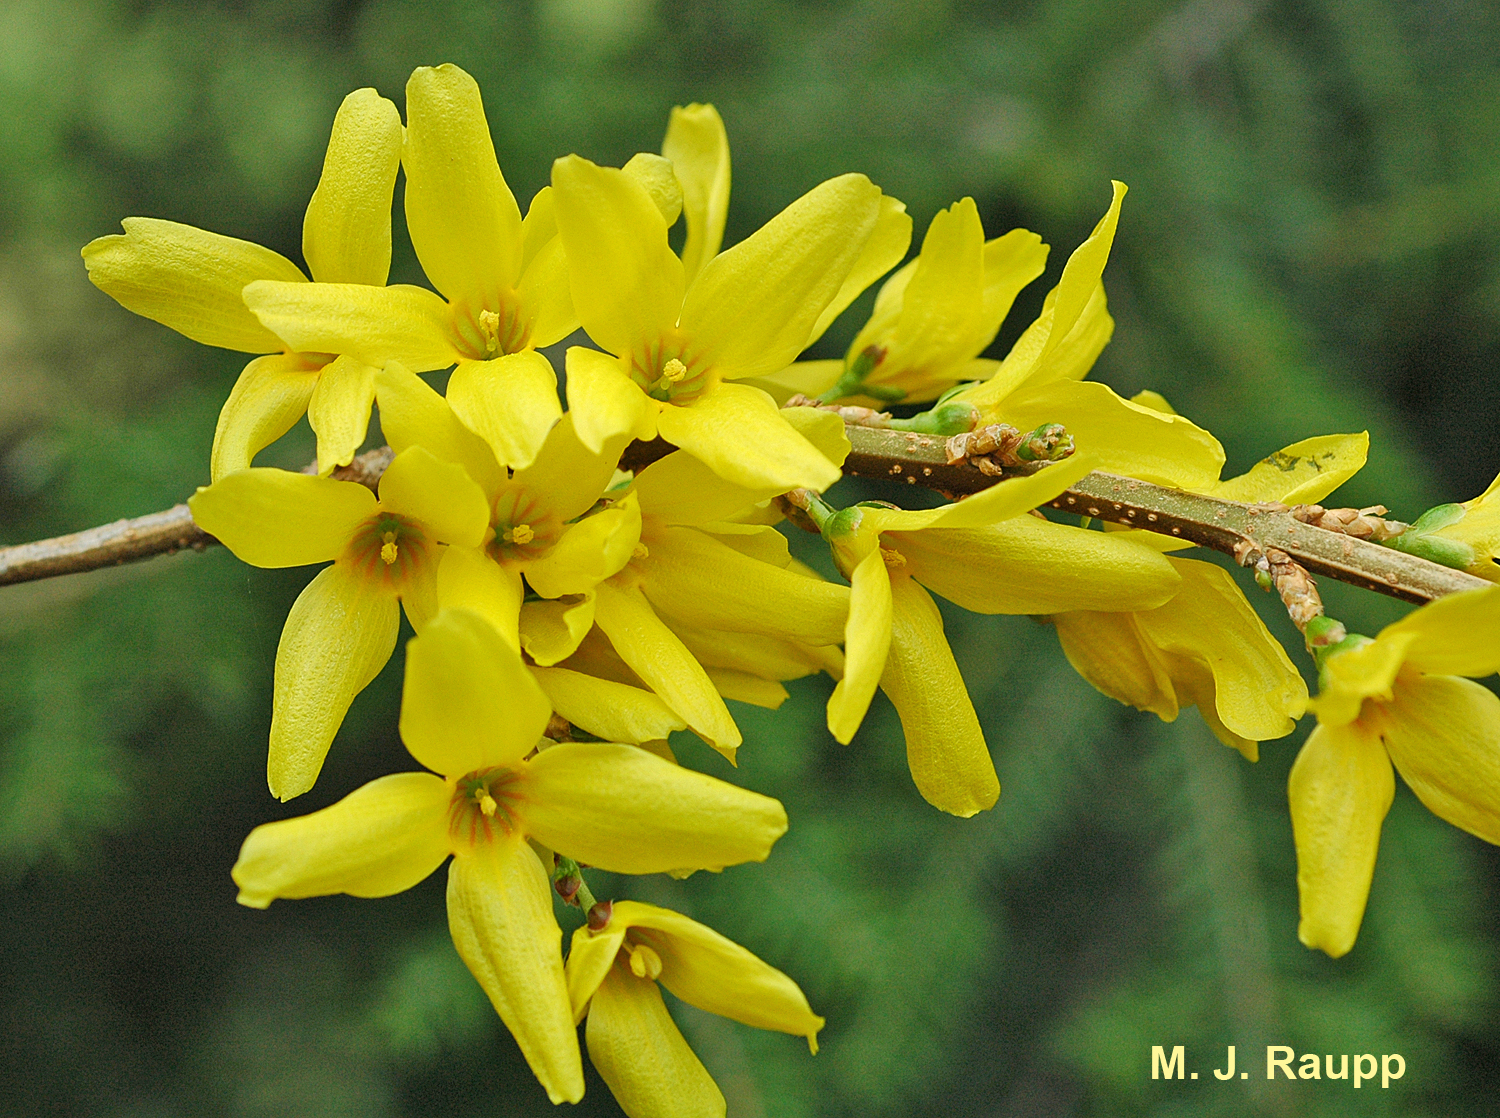 Forsythia blossoms welcome spring - at last!